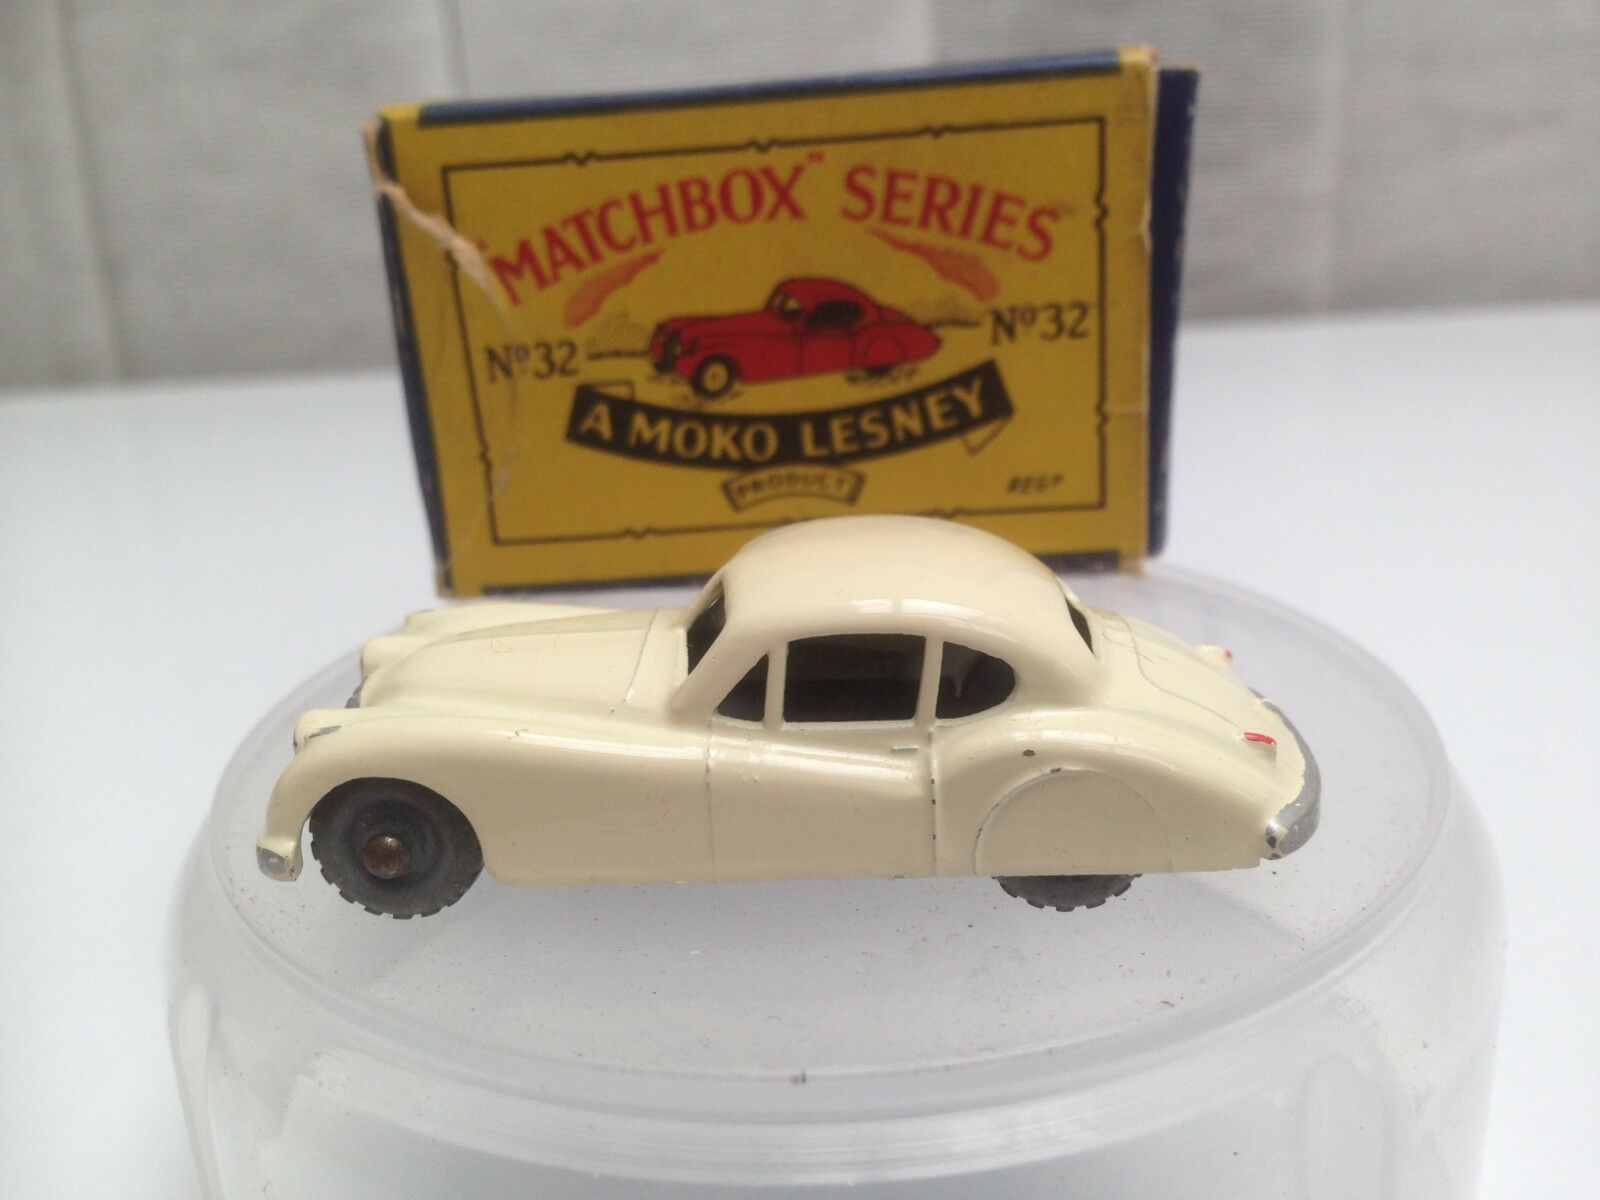 Matchbox Series A Moko Lesney Jaguar XK 140 No 32